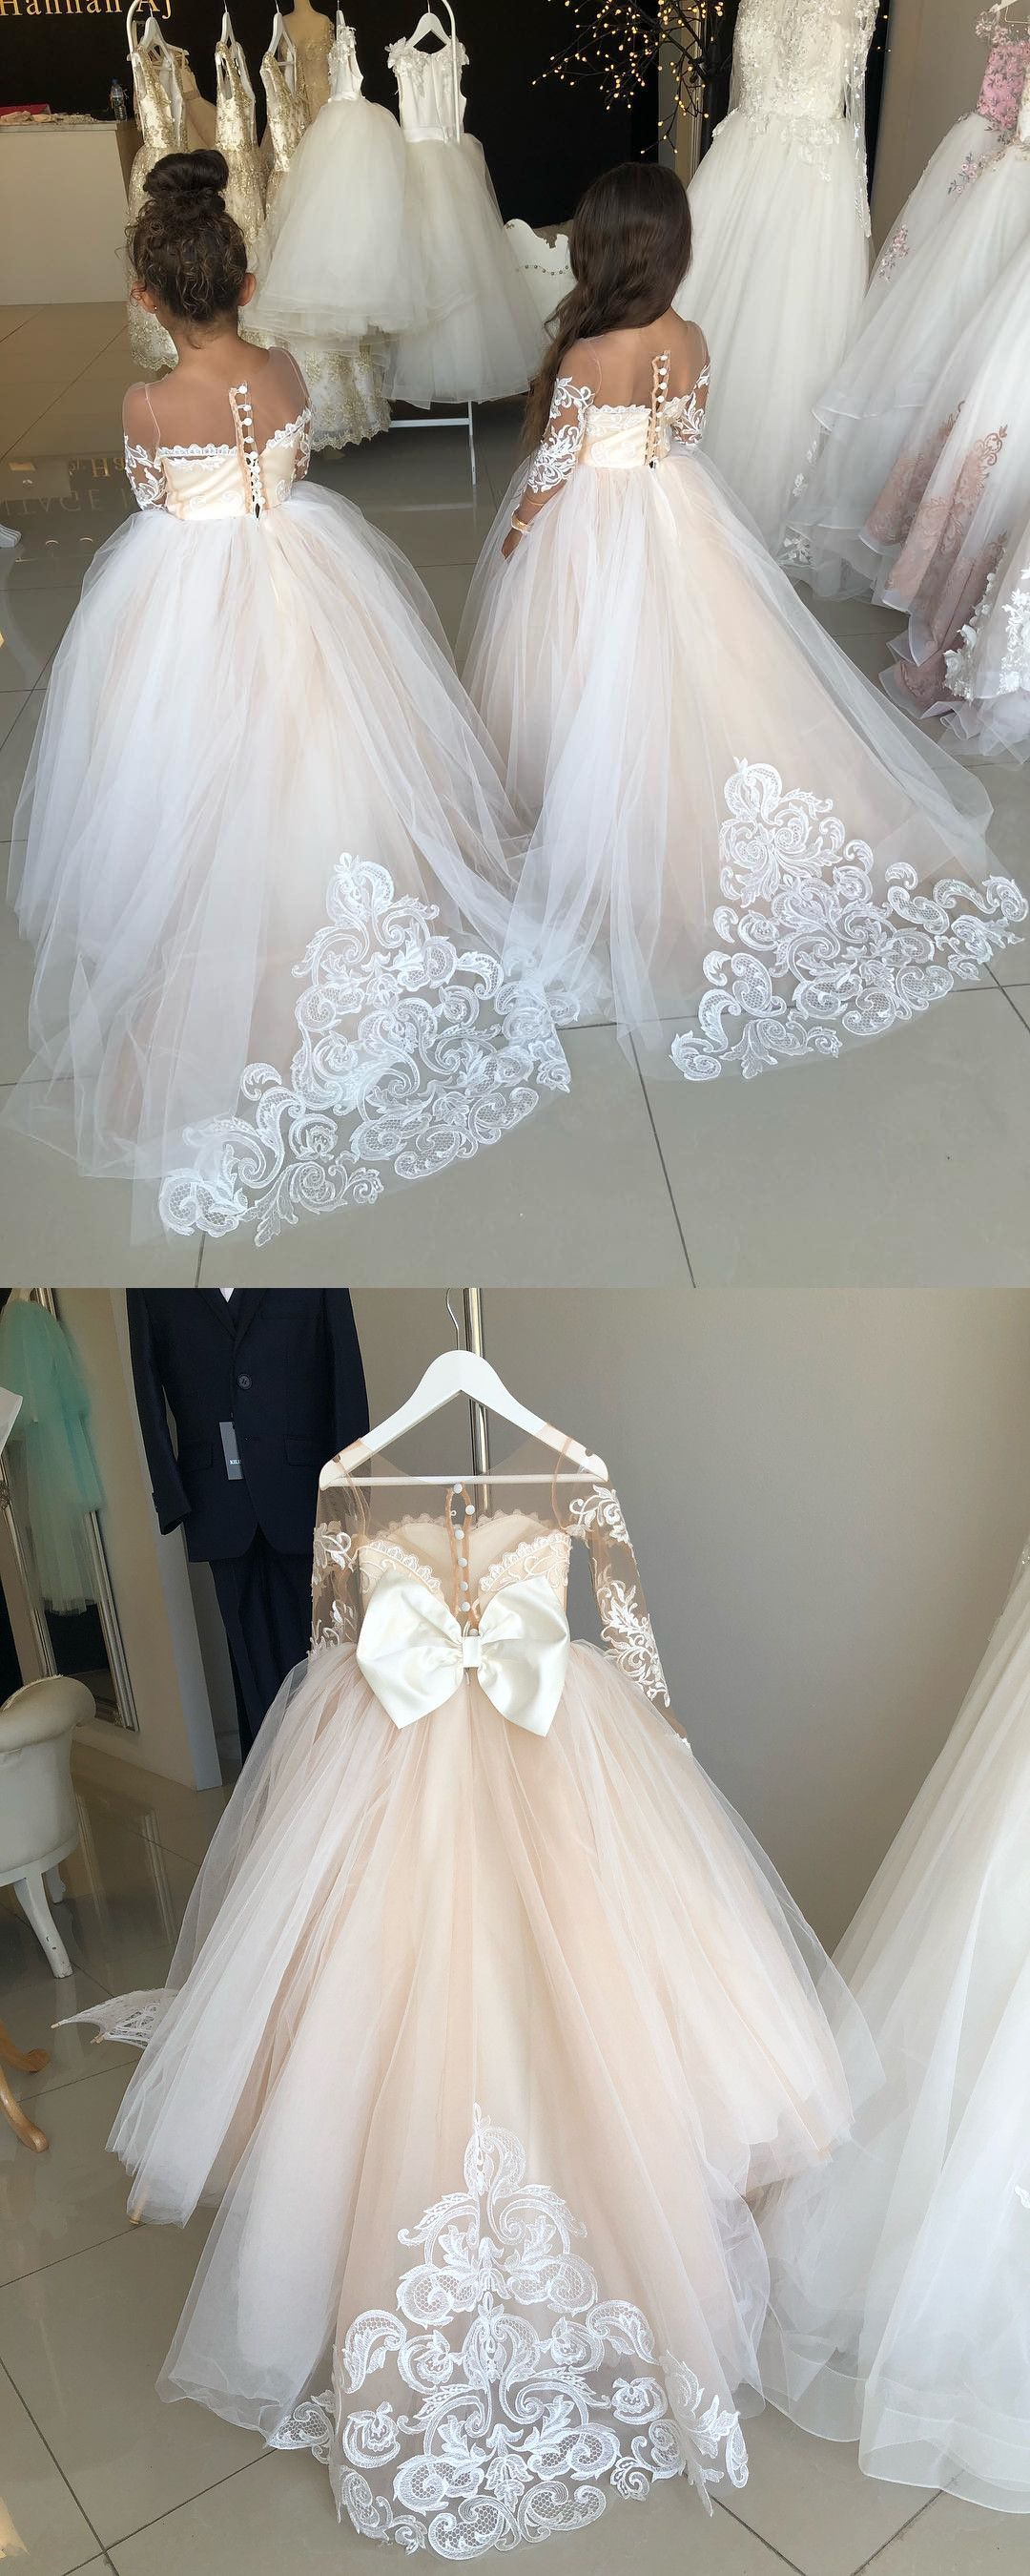 Princess long sleeves long flower girl dress with train wedding